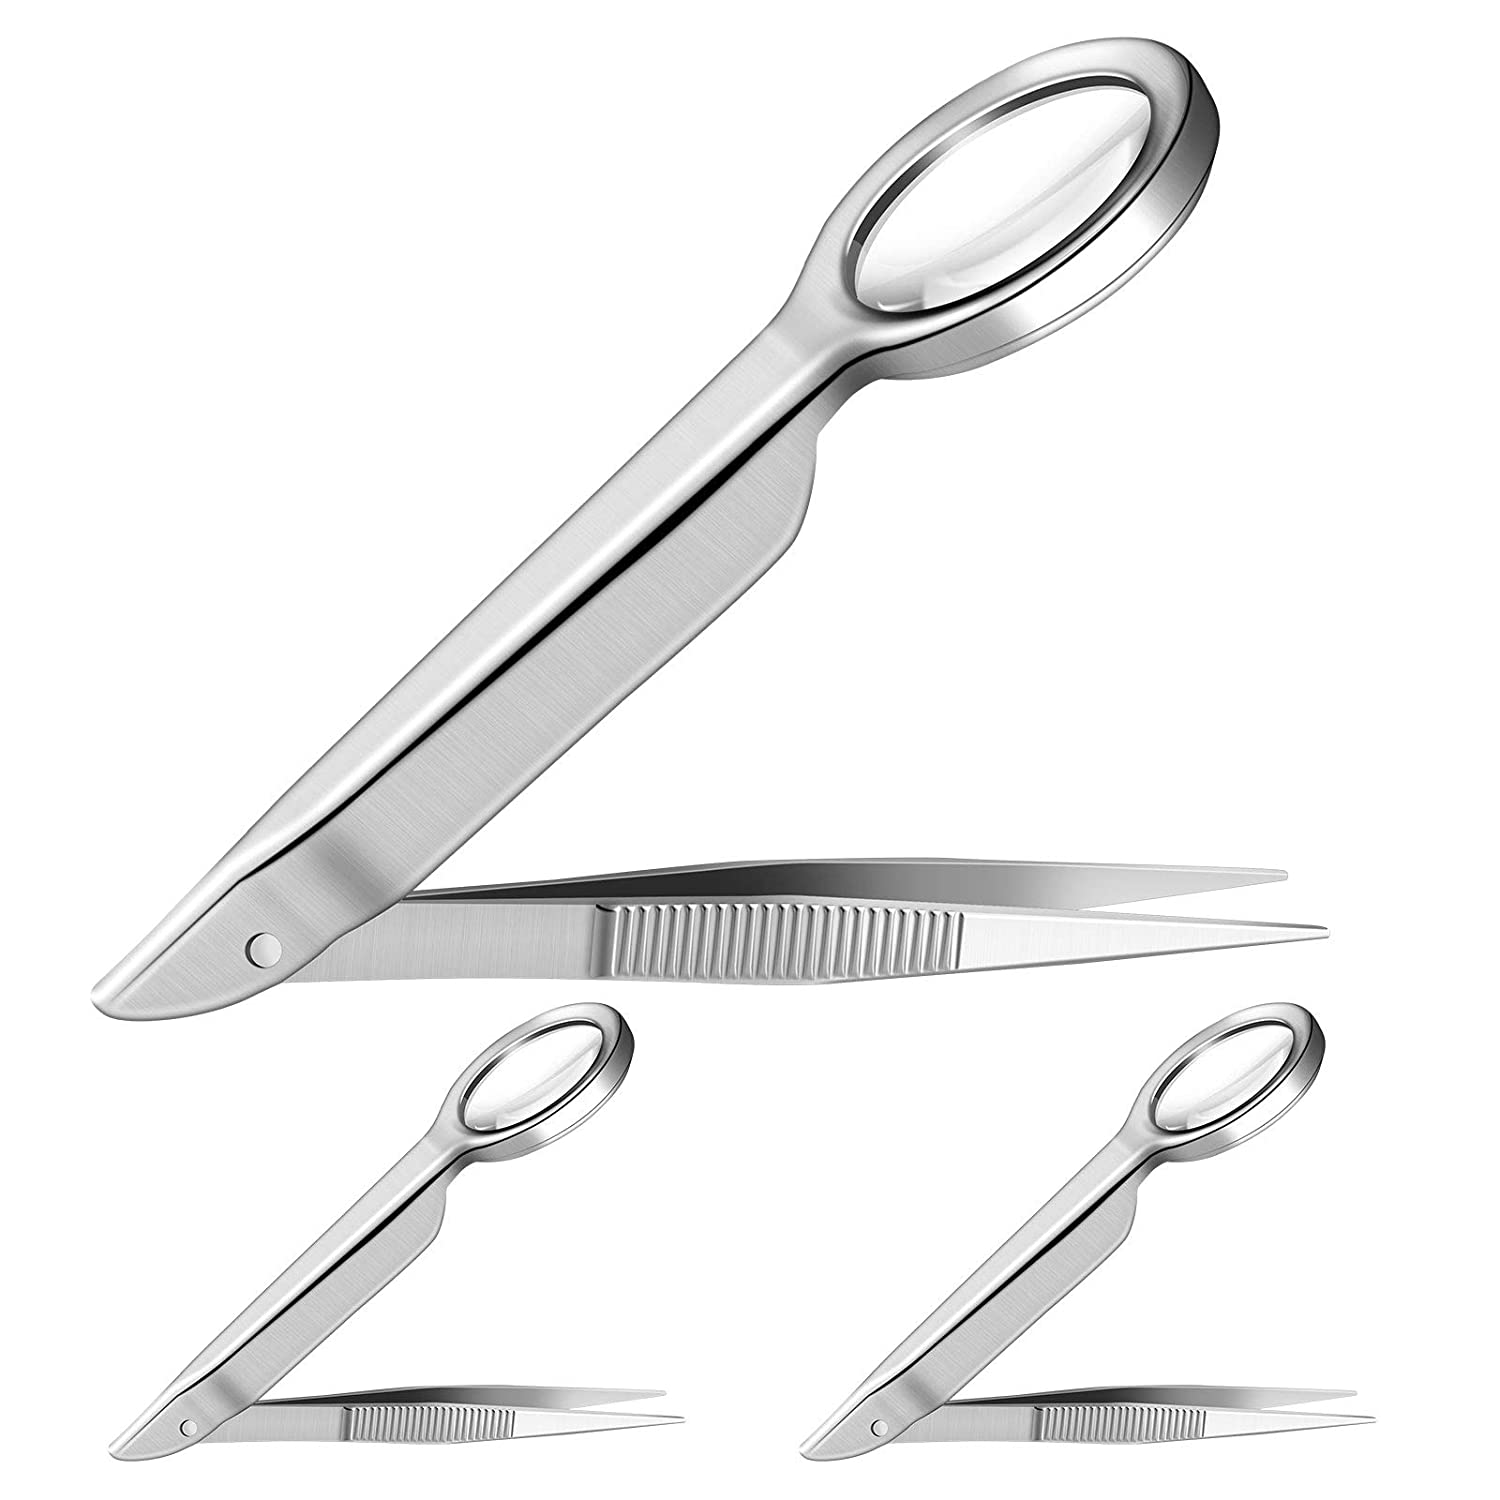 3 Pieces Magnifying Tweezers Recommended with Mag Splinter Regular dealer Forceps